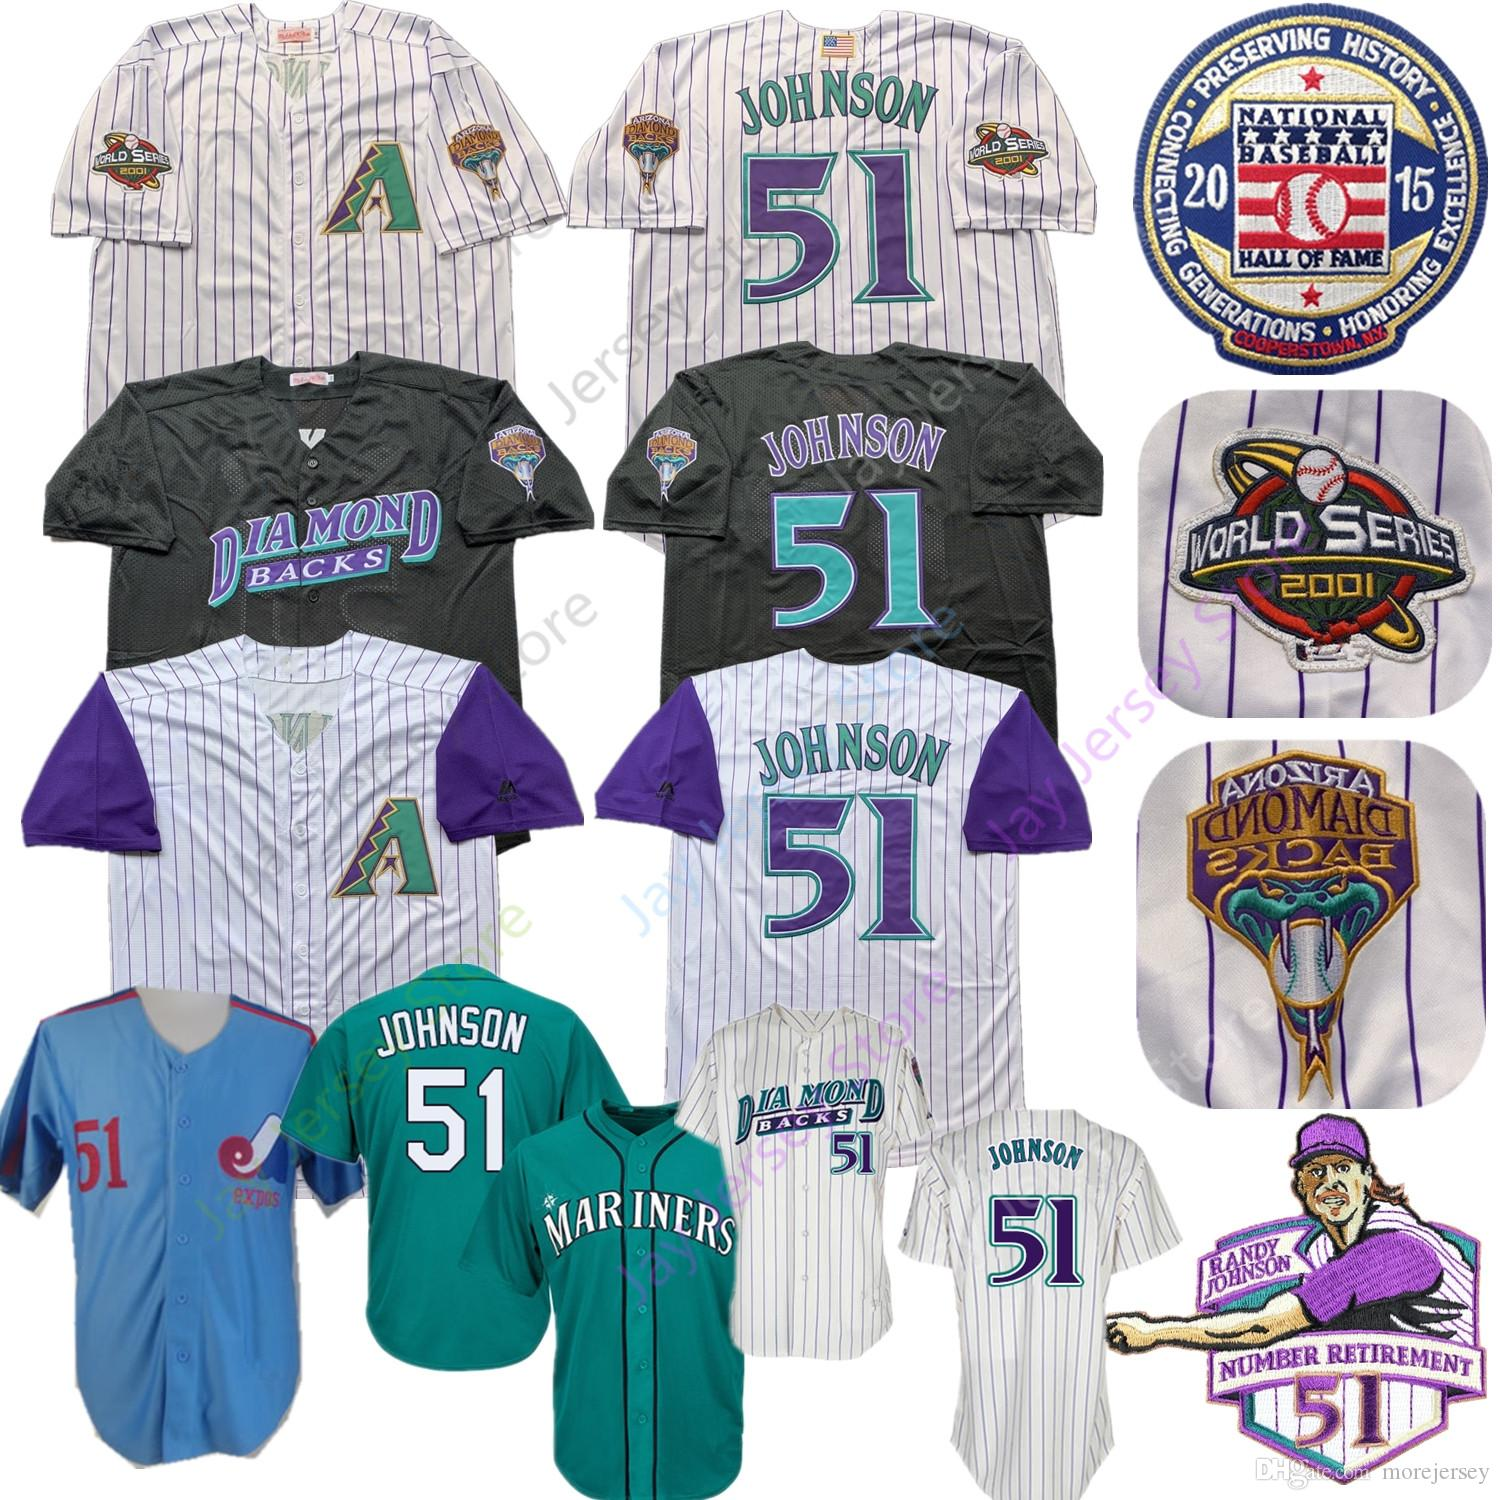 wholesale dealer 8228a 0cd37 Randy Johnson Jersey Cooperstown 2001 World Series 2015 Hall of Fame  Arizona Montreal Diamondbacks Expos Mariners Jerseys Pinstripe Cream